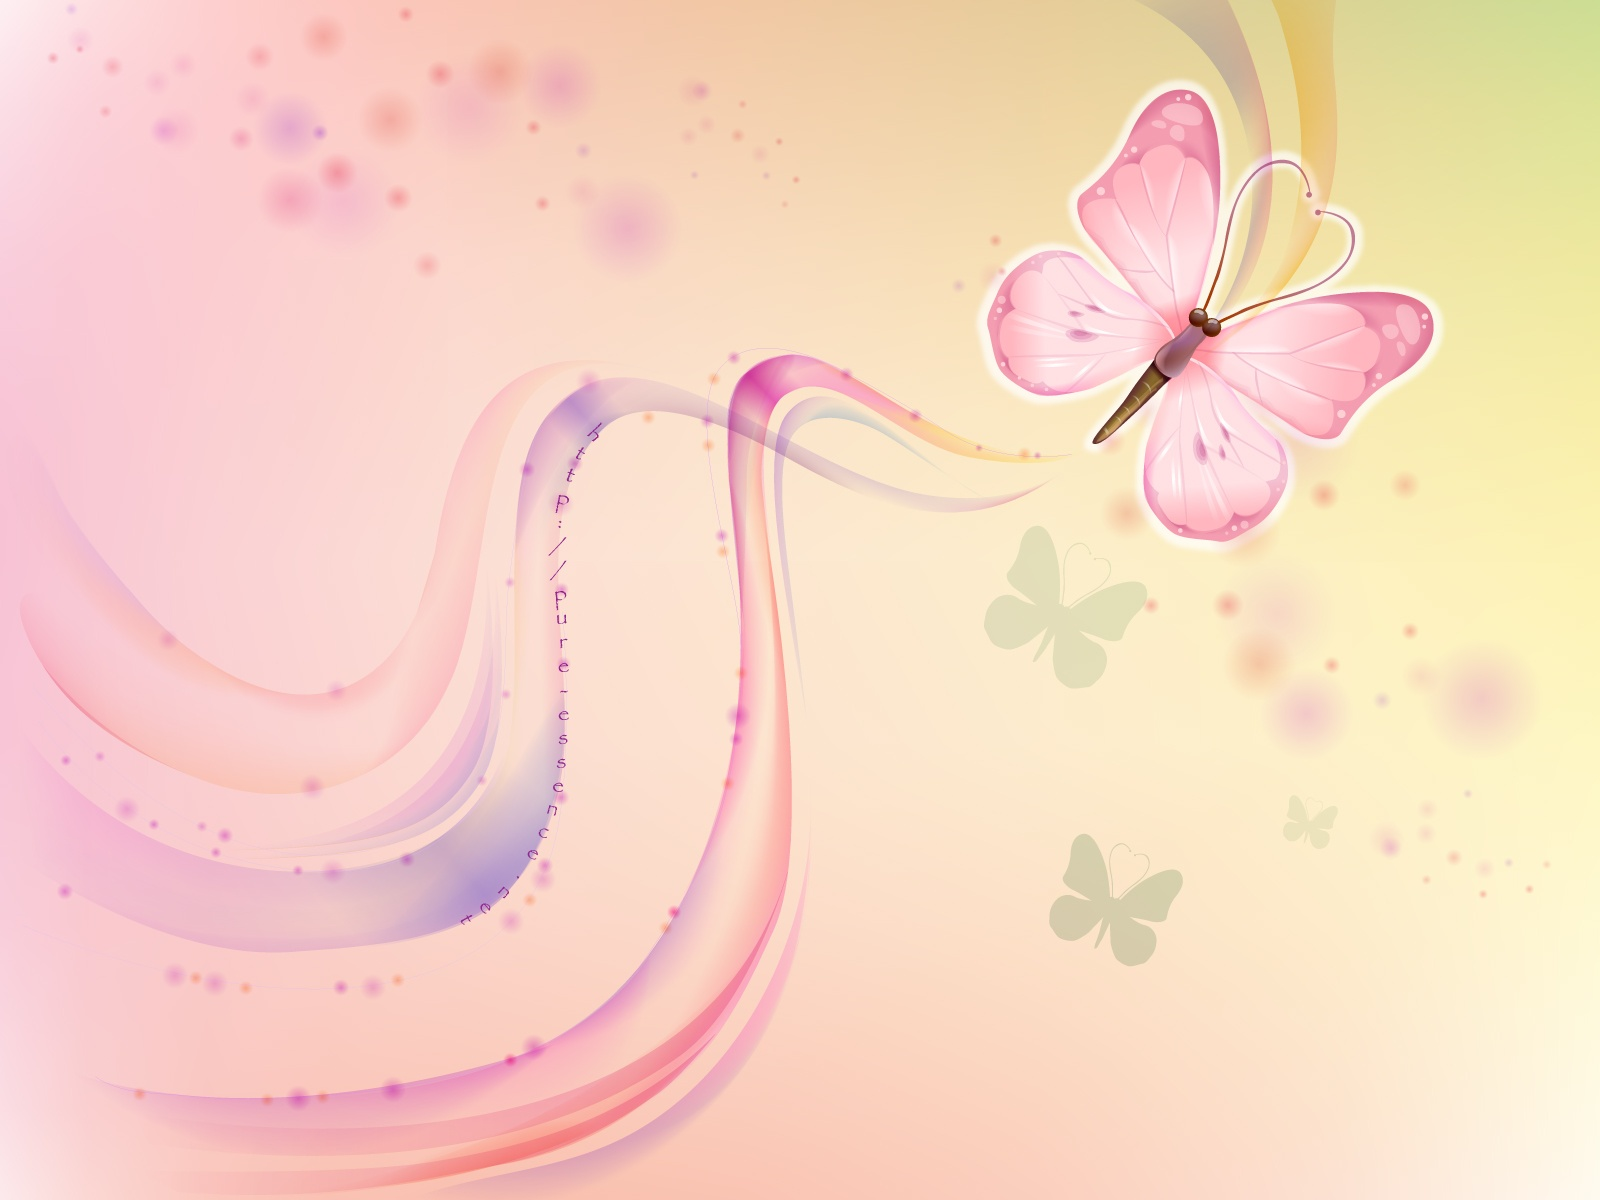 pastel butterfly normal WallpaperSuggestcom wallpapers 1600x1200